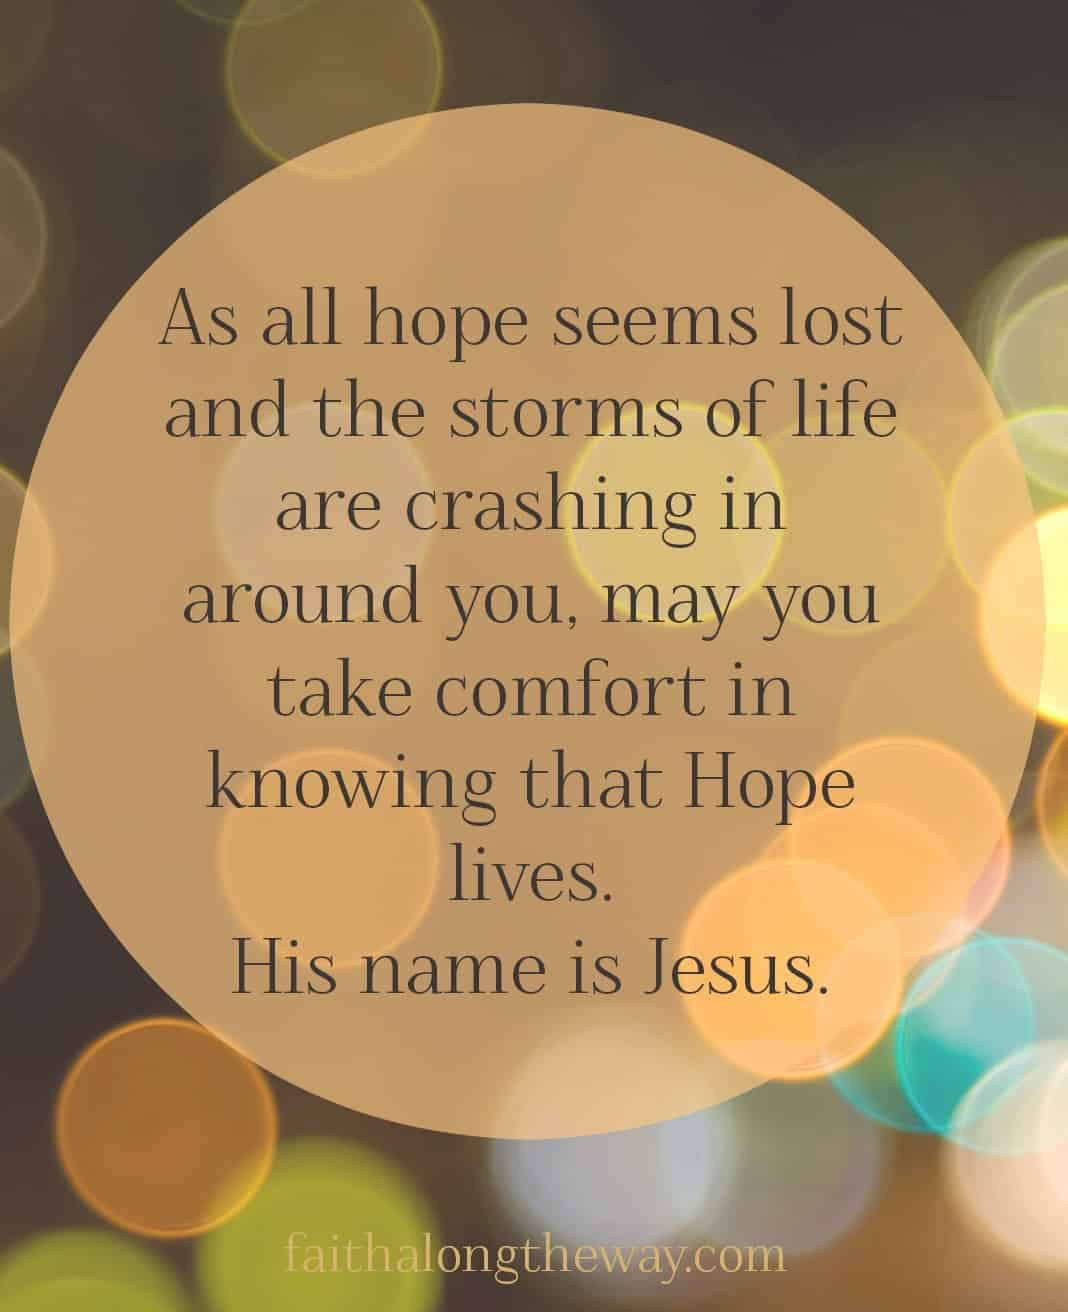 All hope is not lost quote Faith Along the Way